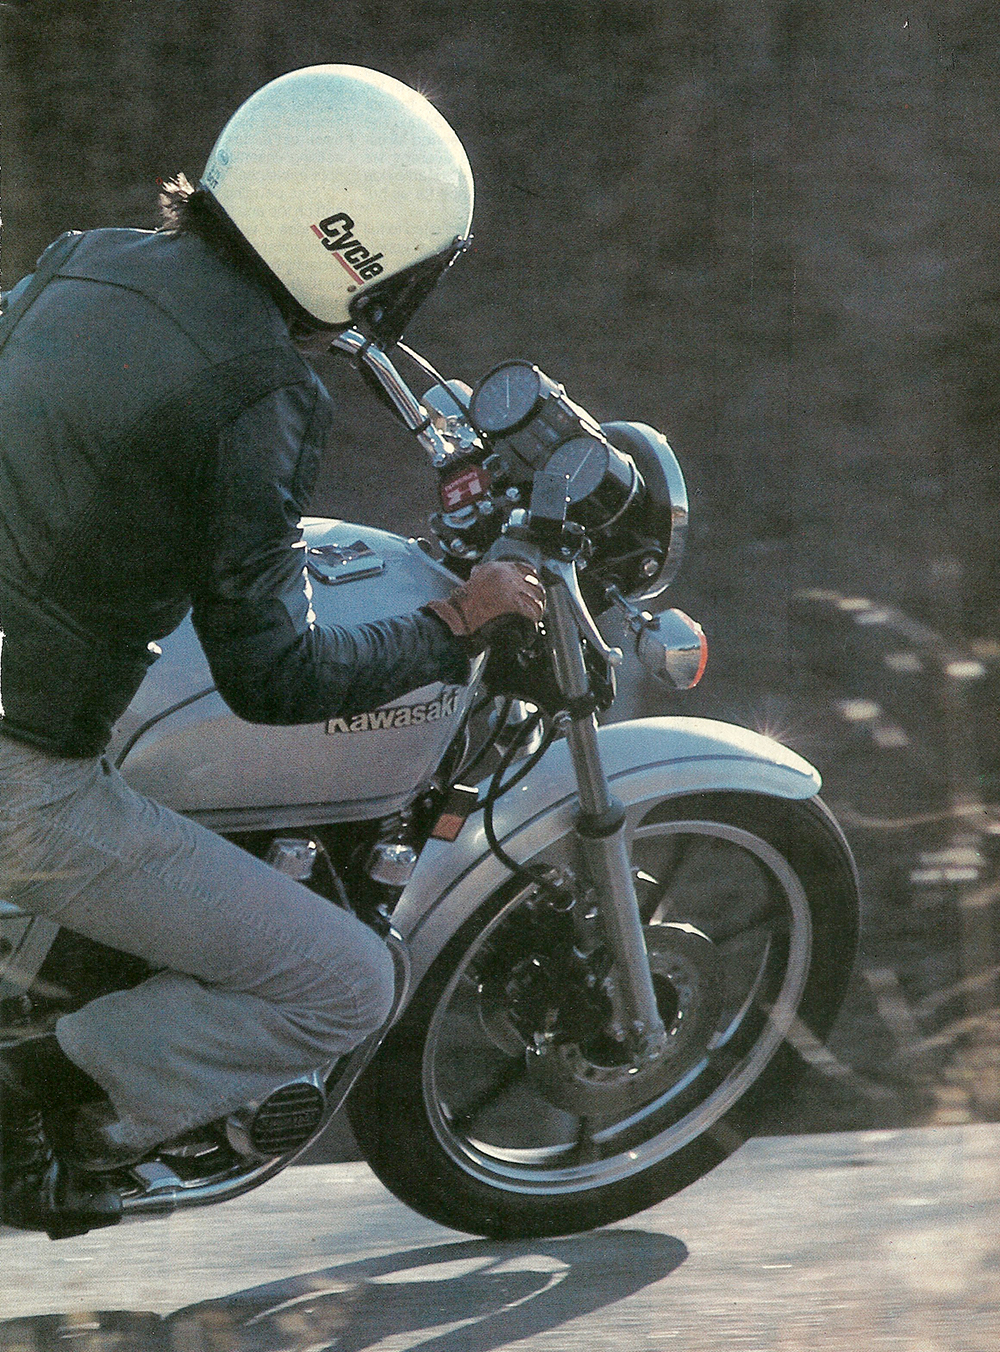 1982 Kawasaki kz750 road test 02.JPG